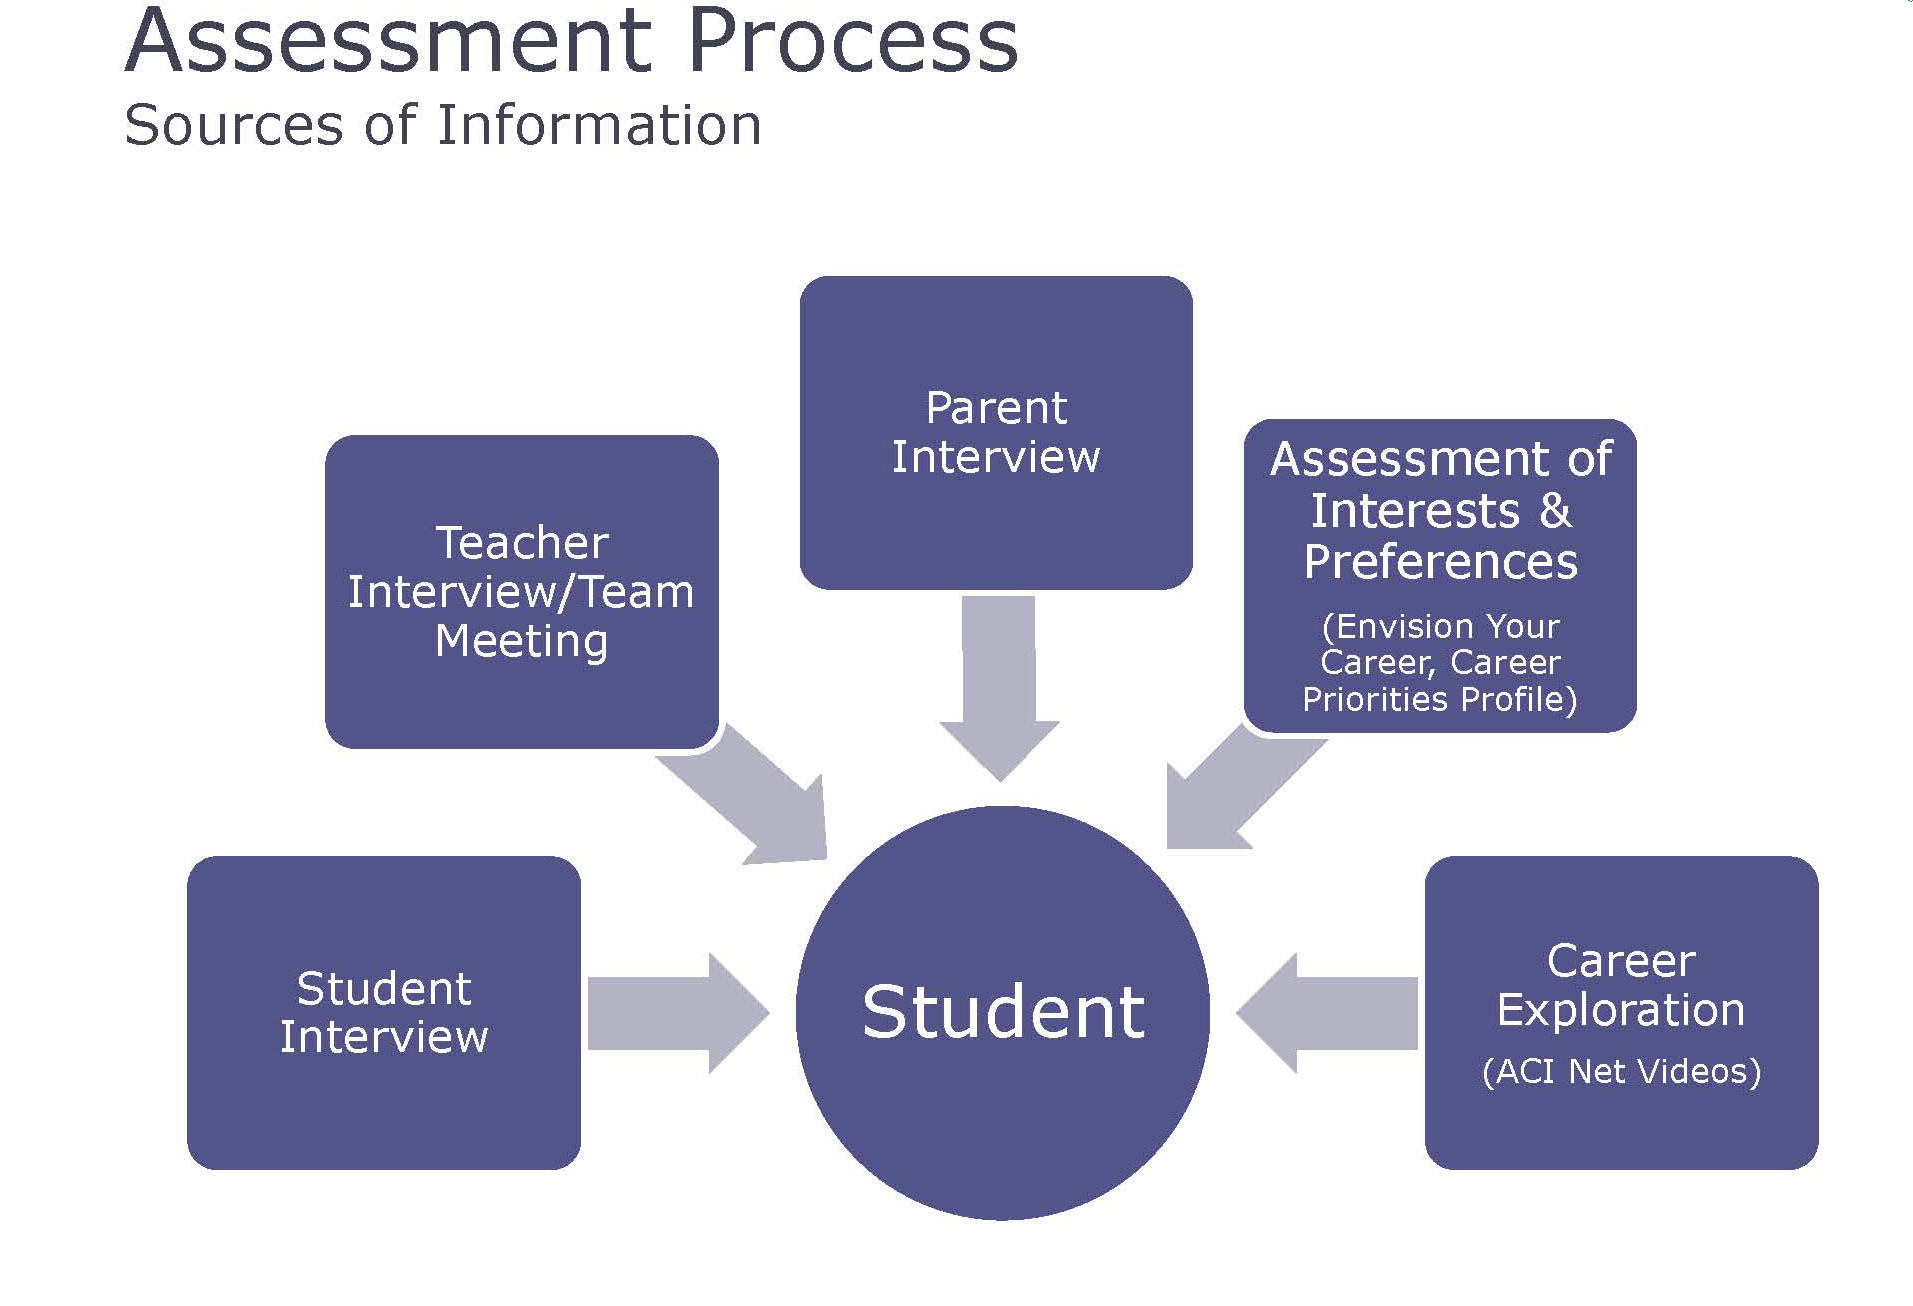 assessment process Start studying assessment process learn vocabulary, terms, and more with flashcards, games, and other study tools.